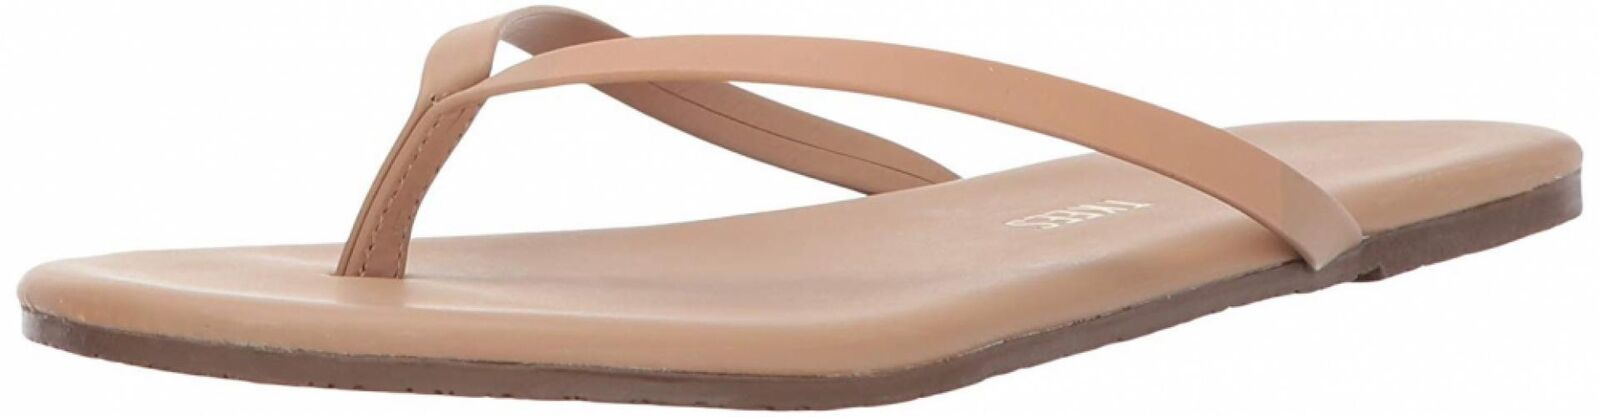 TKEES Wouomo Foundation Flip Flop